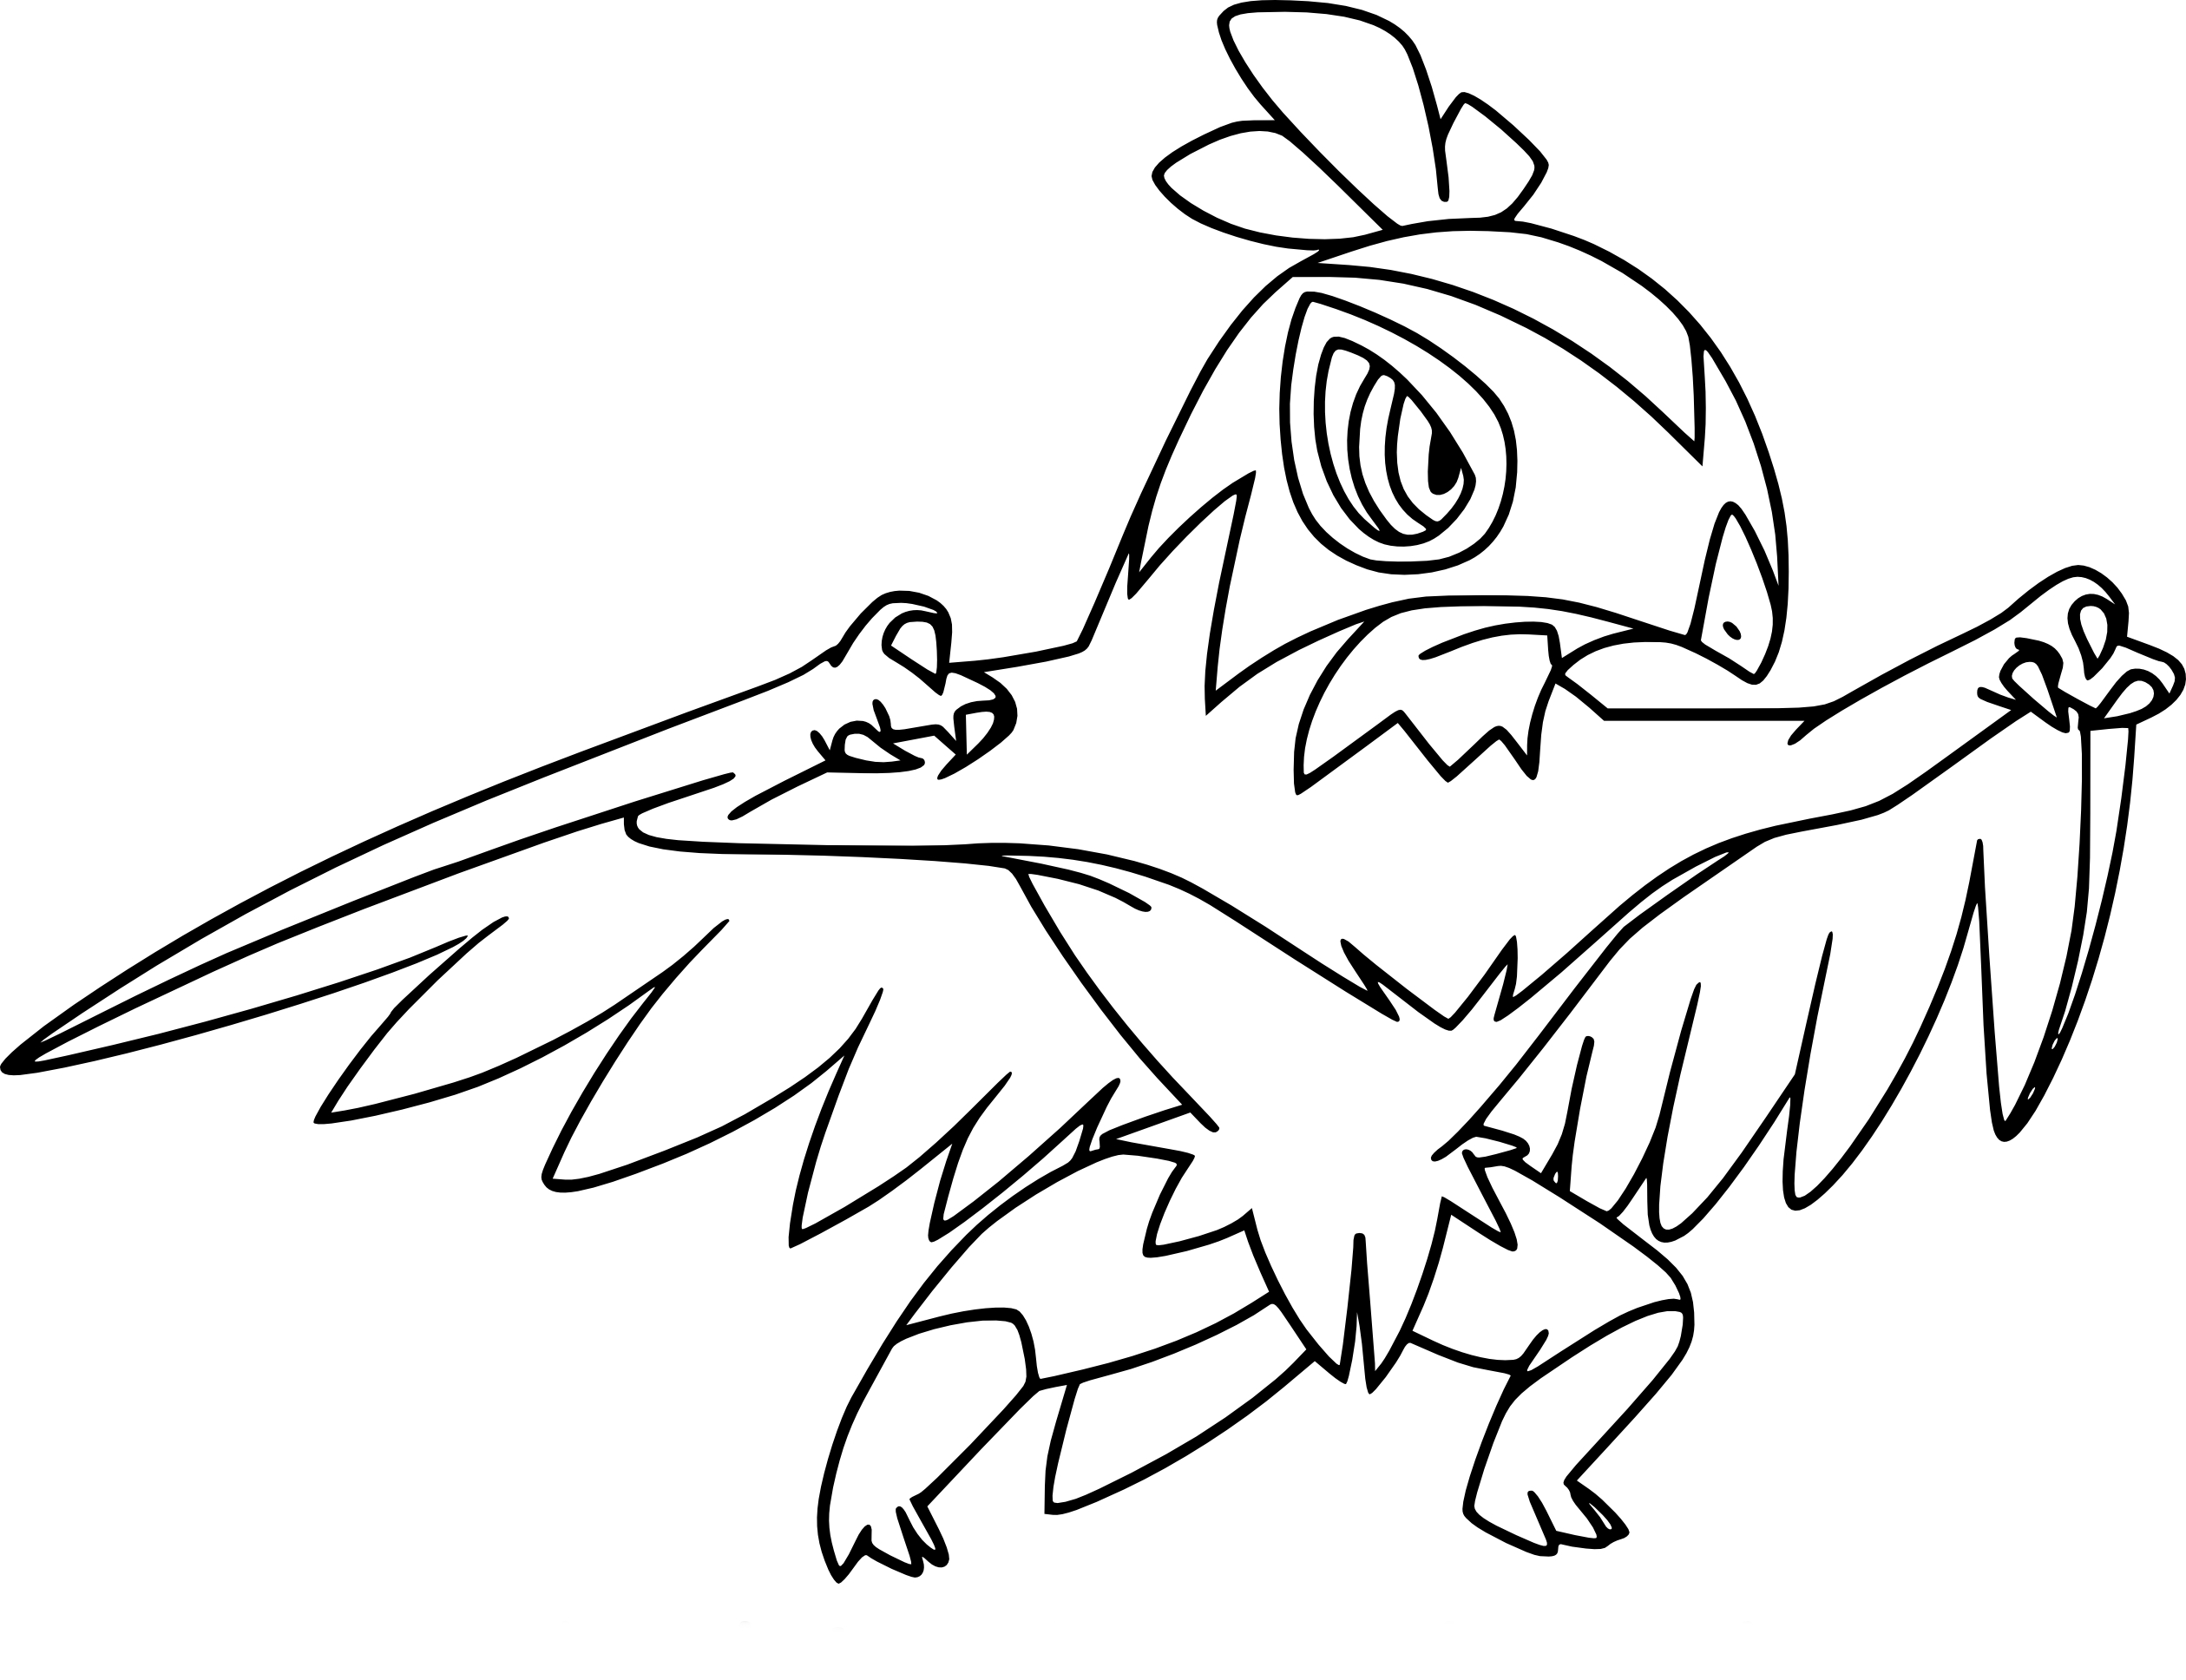 Coloriage brutalibr pokemon imprimer - Dessins de pokemon ...